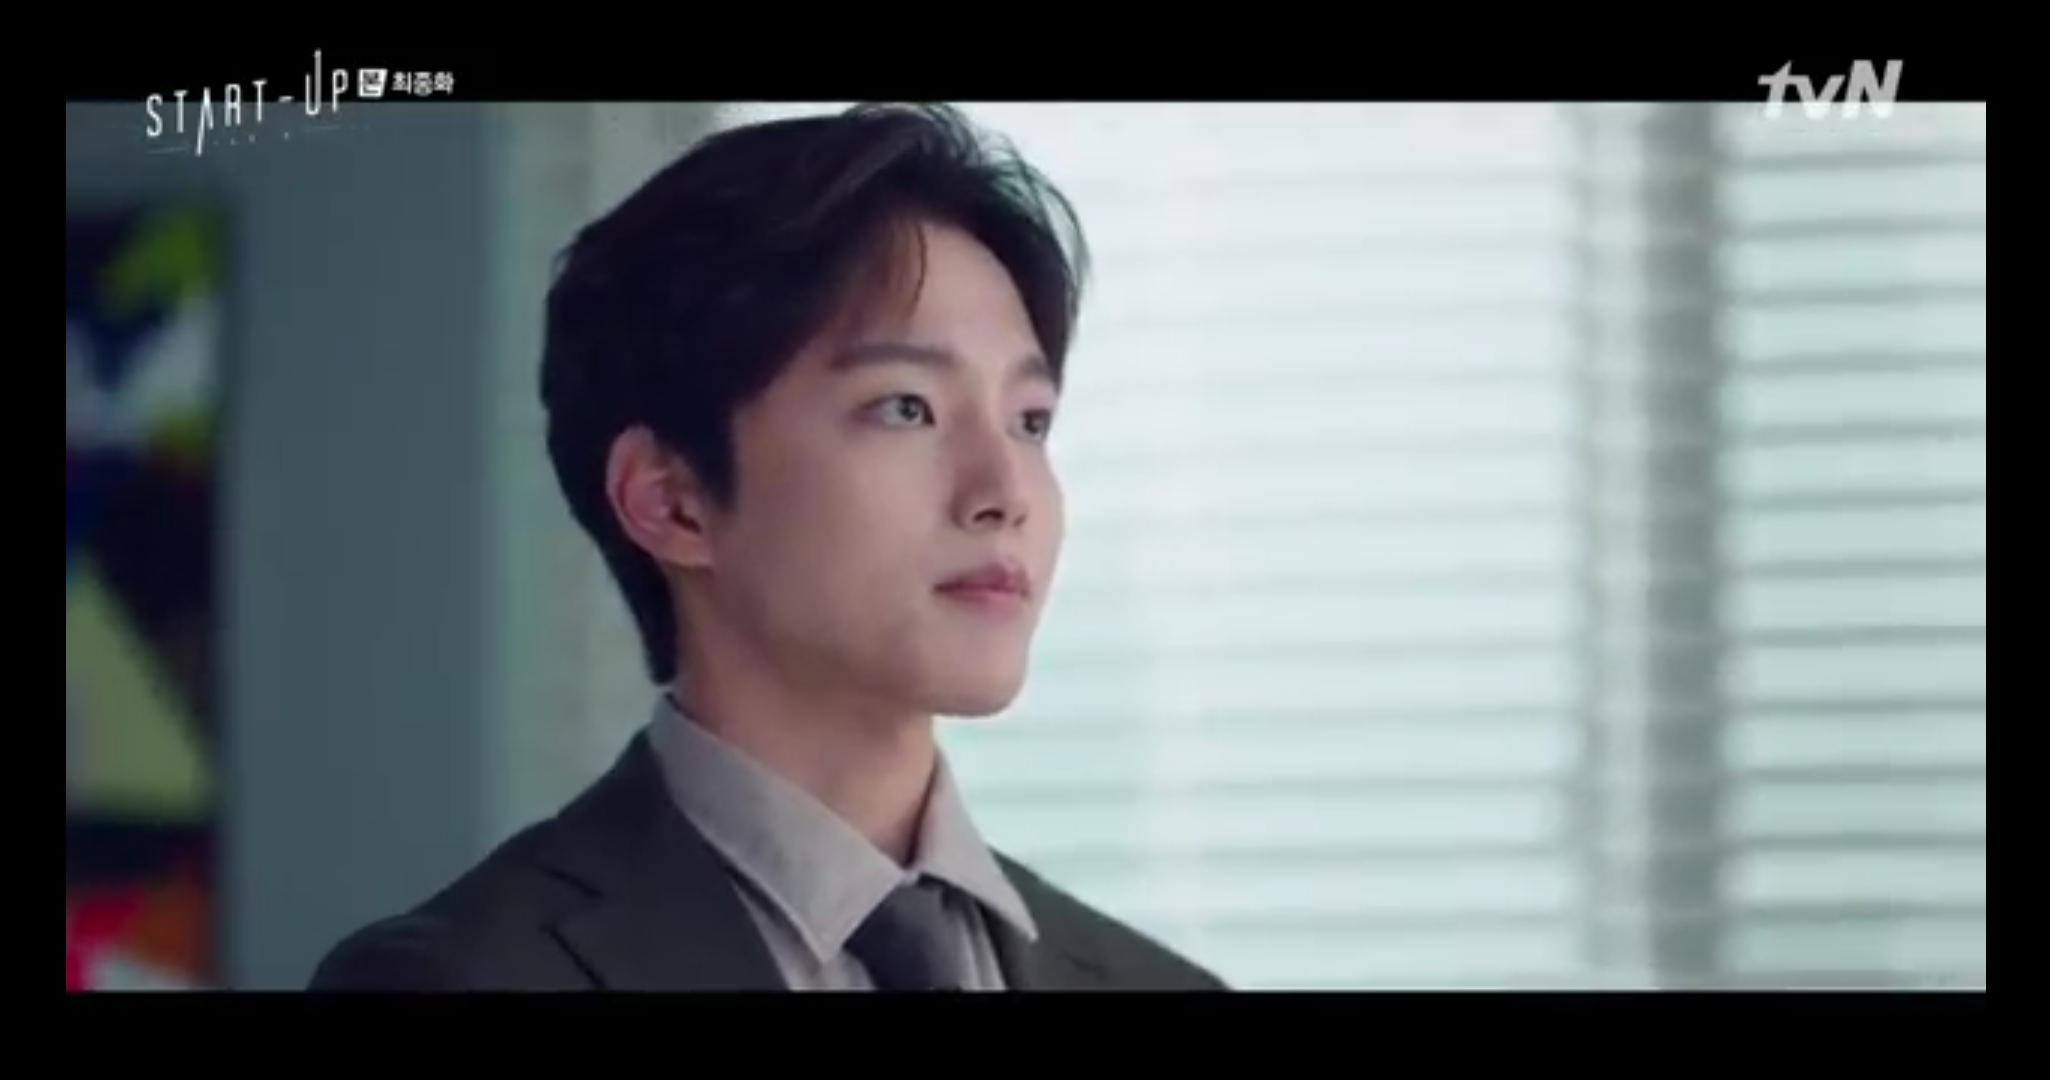 Yeo Jin Goo's Special Appearance in Start-Up